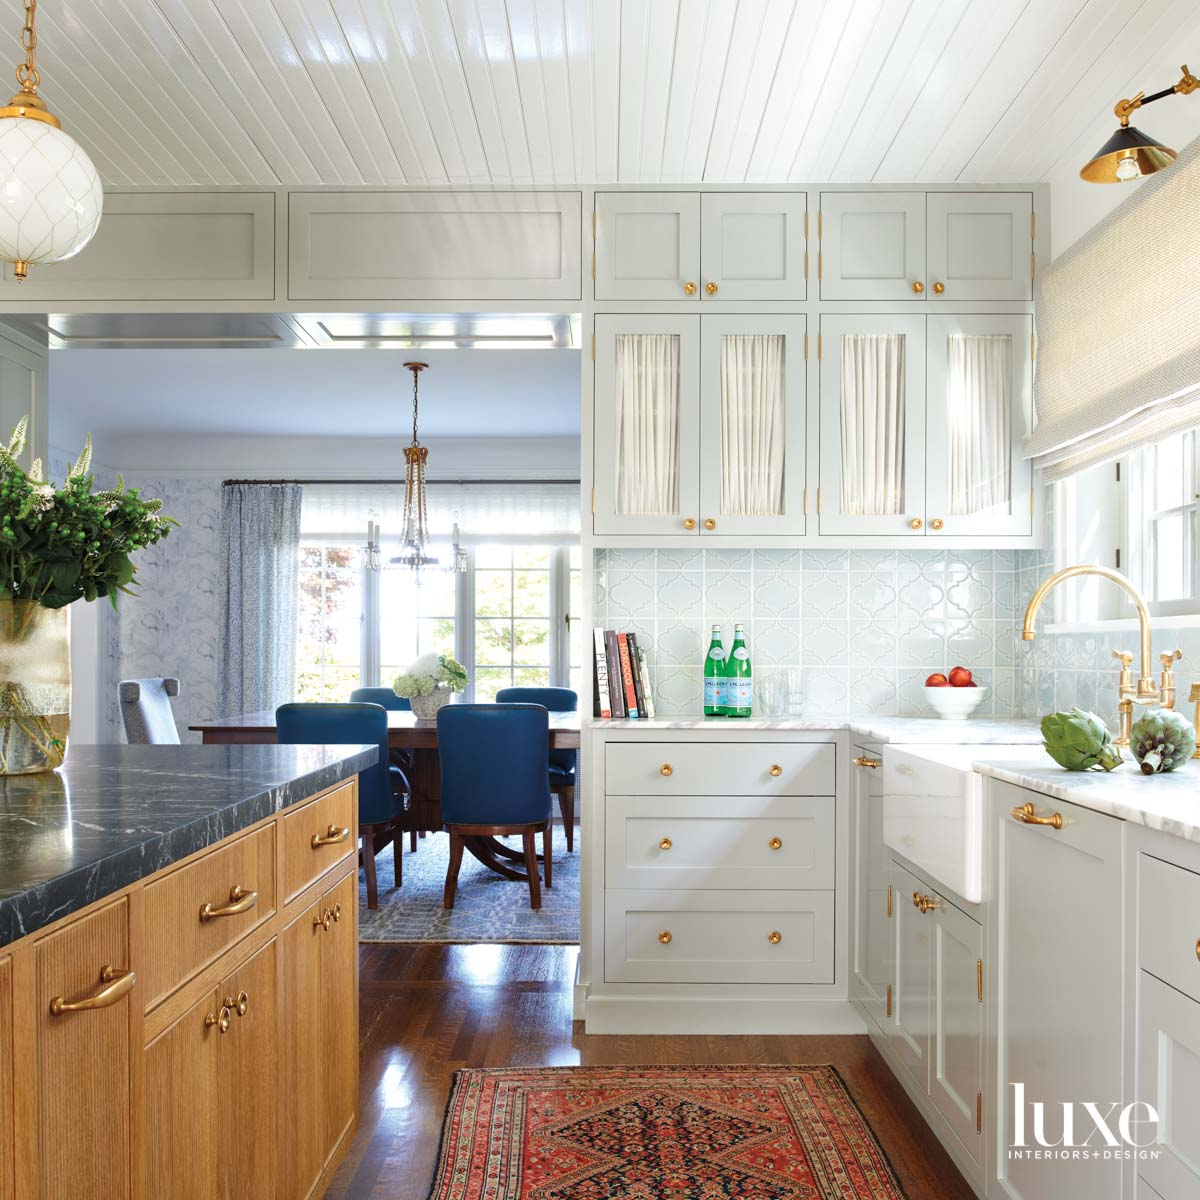 View of kitchen island and...